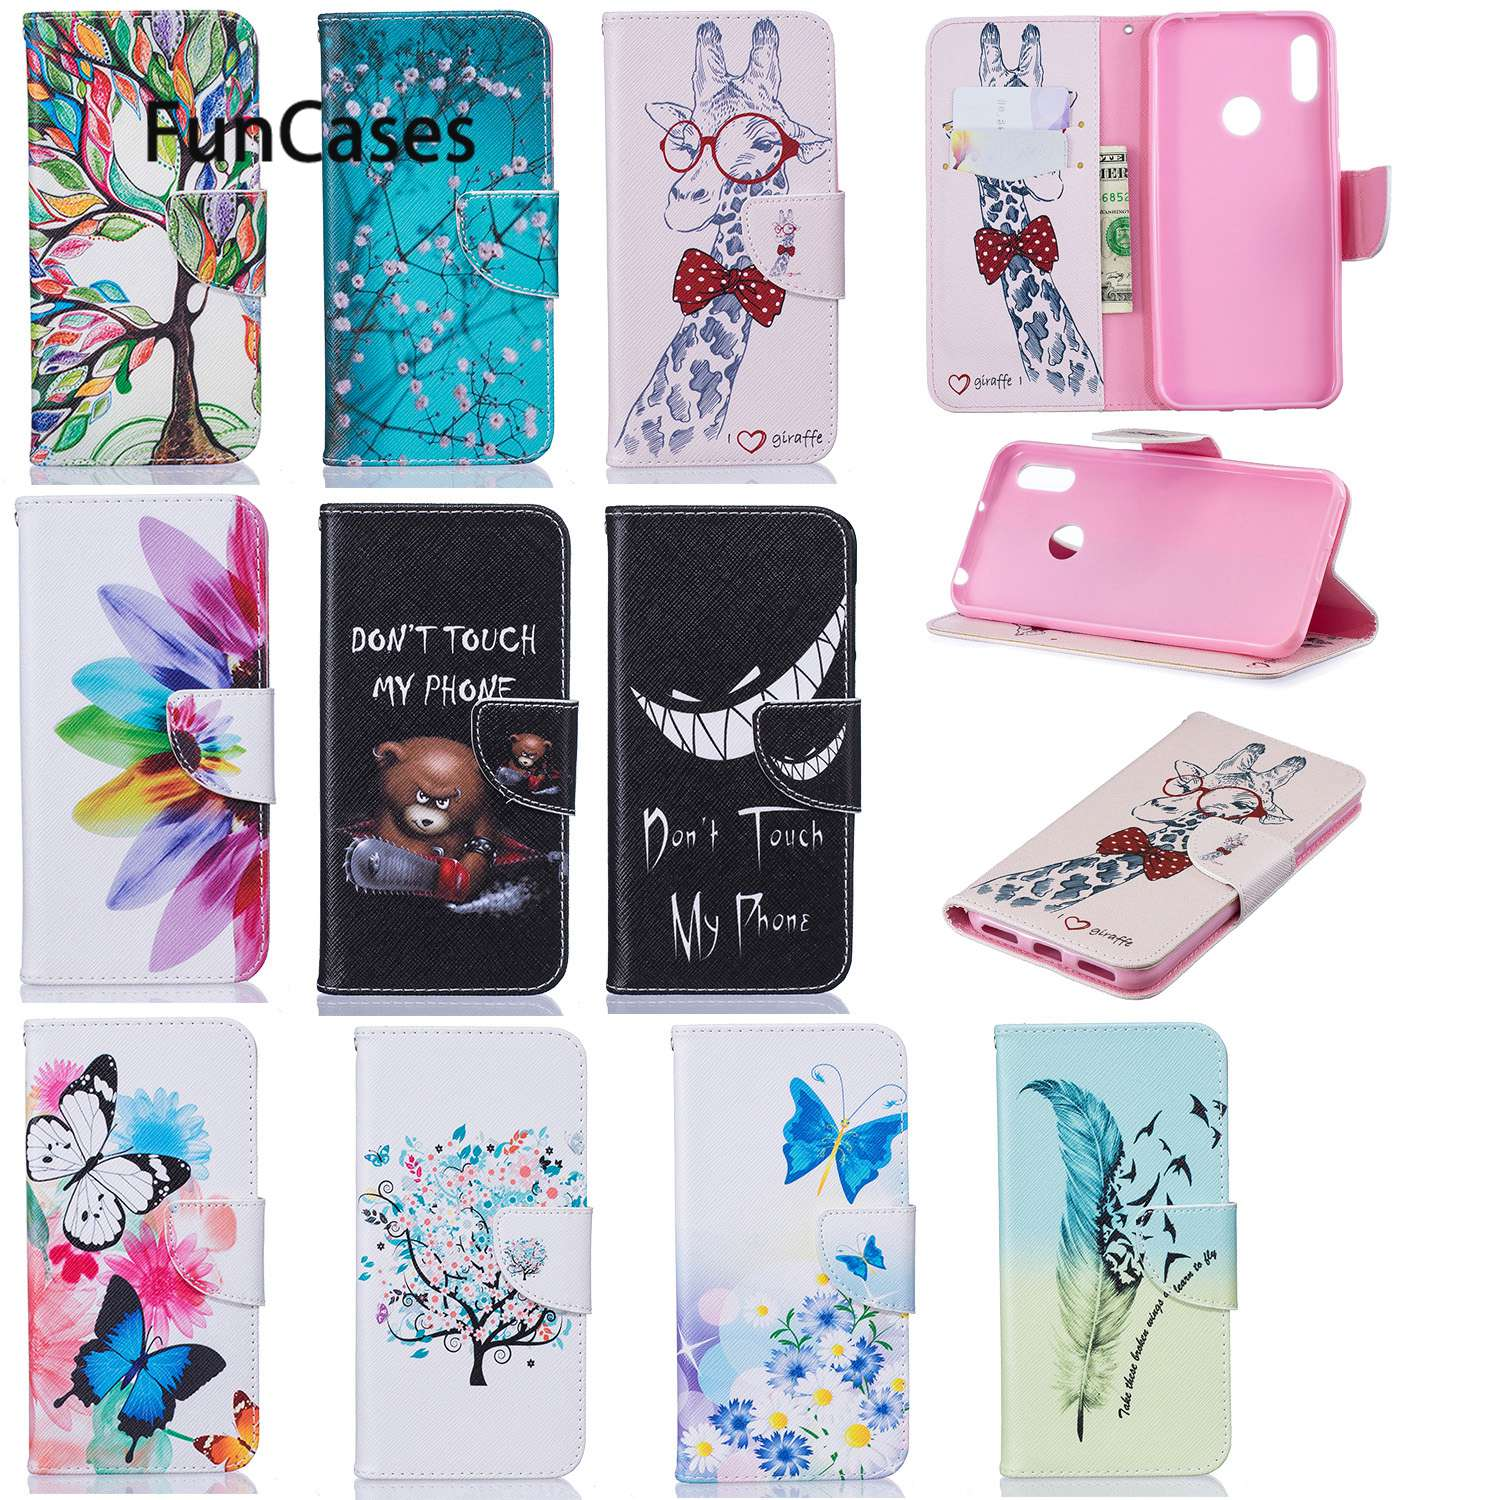 Flower Flip Cases For Huawei Y6 2019 Protector Huawei Honor 8A Play P